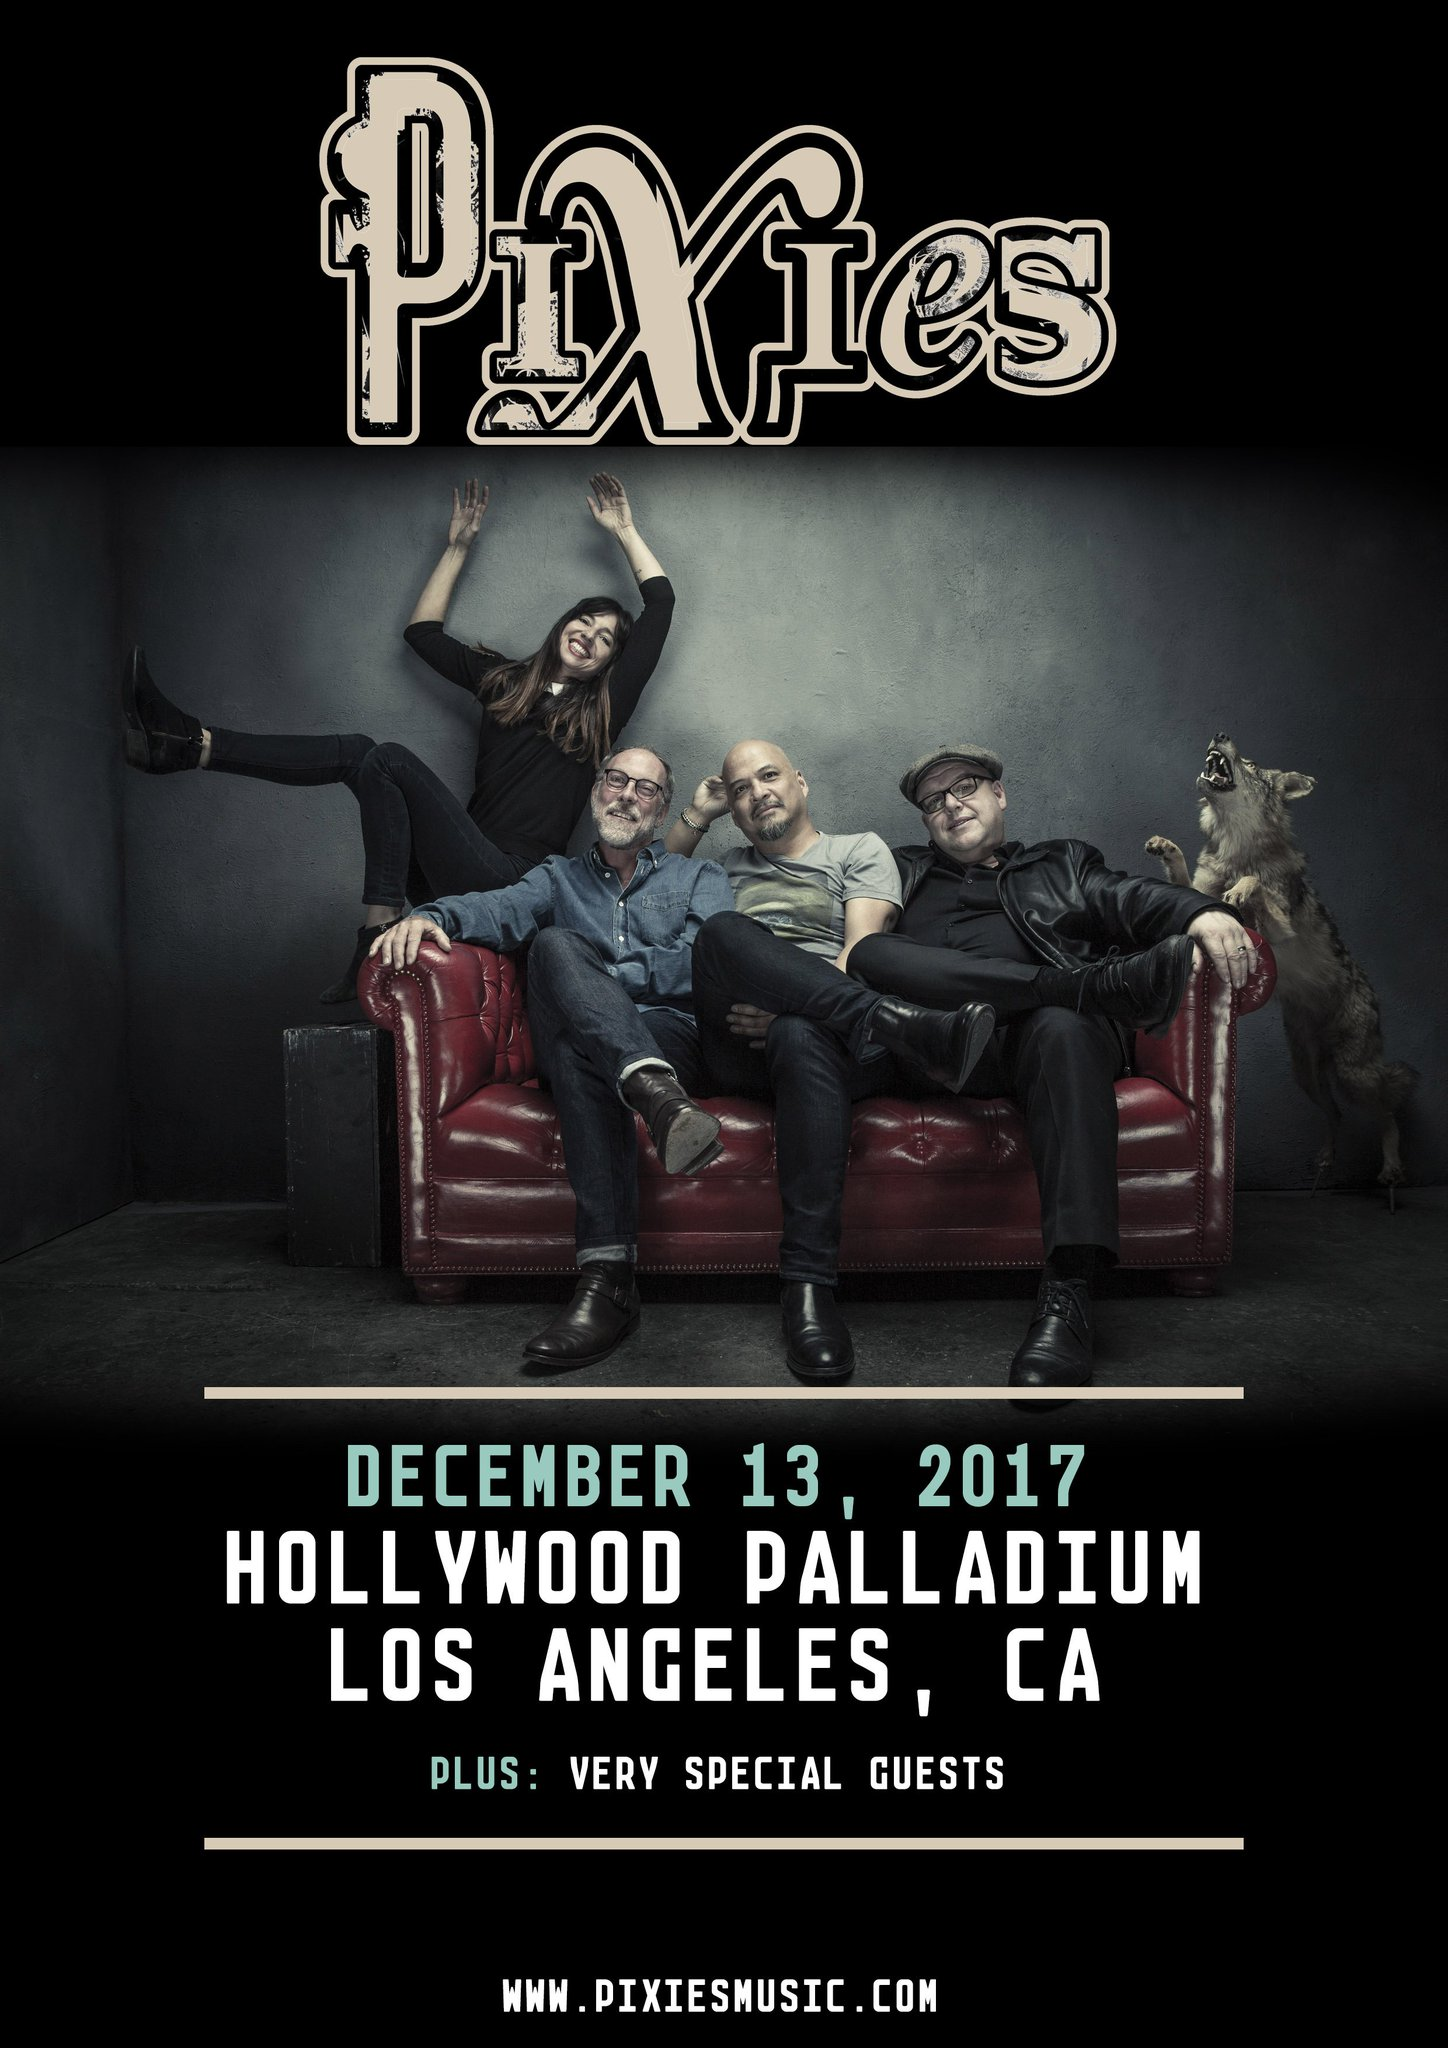 Los Angeles - our show at @ThePalladium is on-sale NOW. Find tickets here: https://t.co/HSjn2tXSdw https://t.co/HXjI2j67Ab